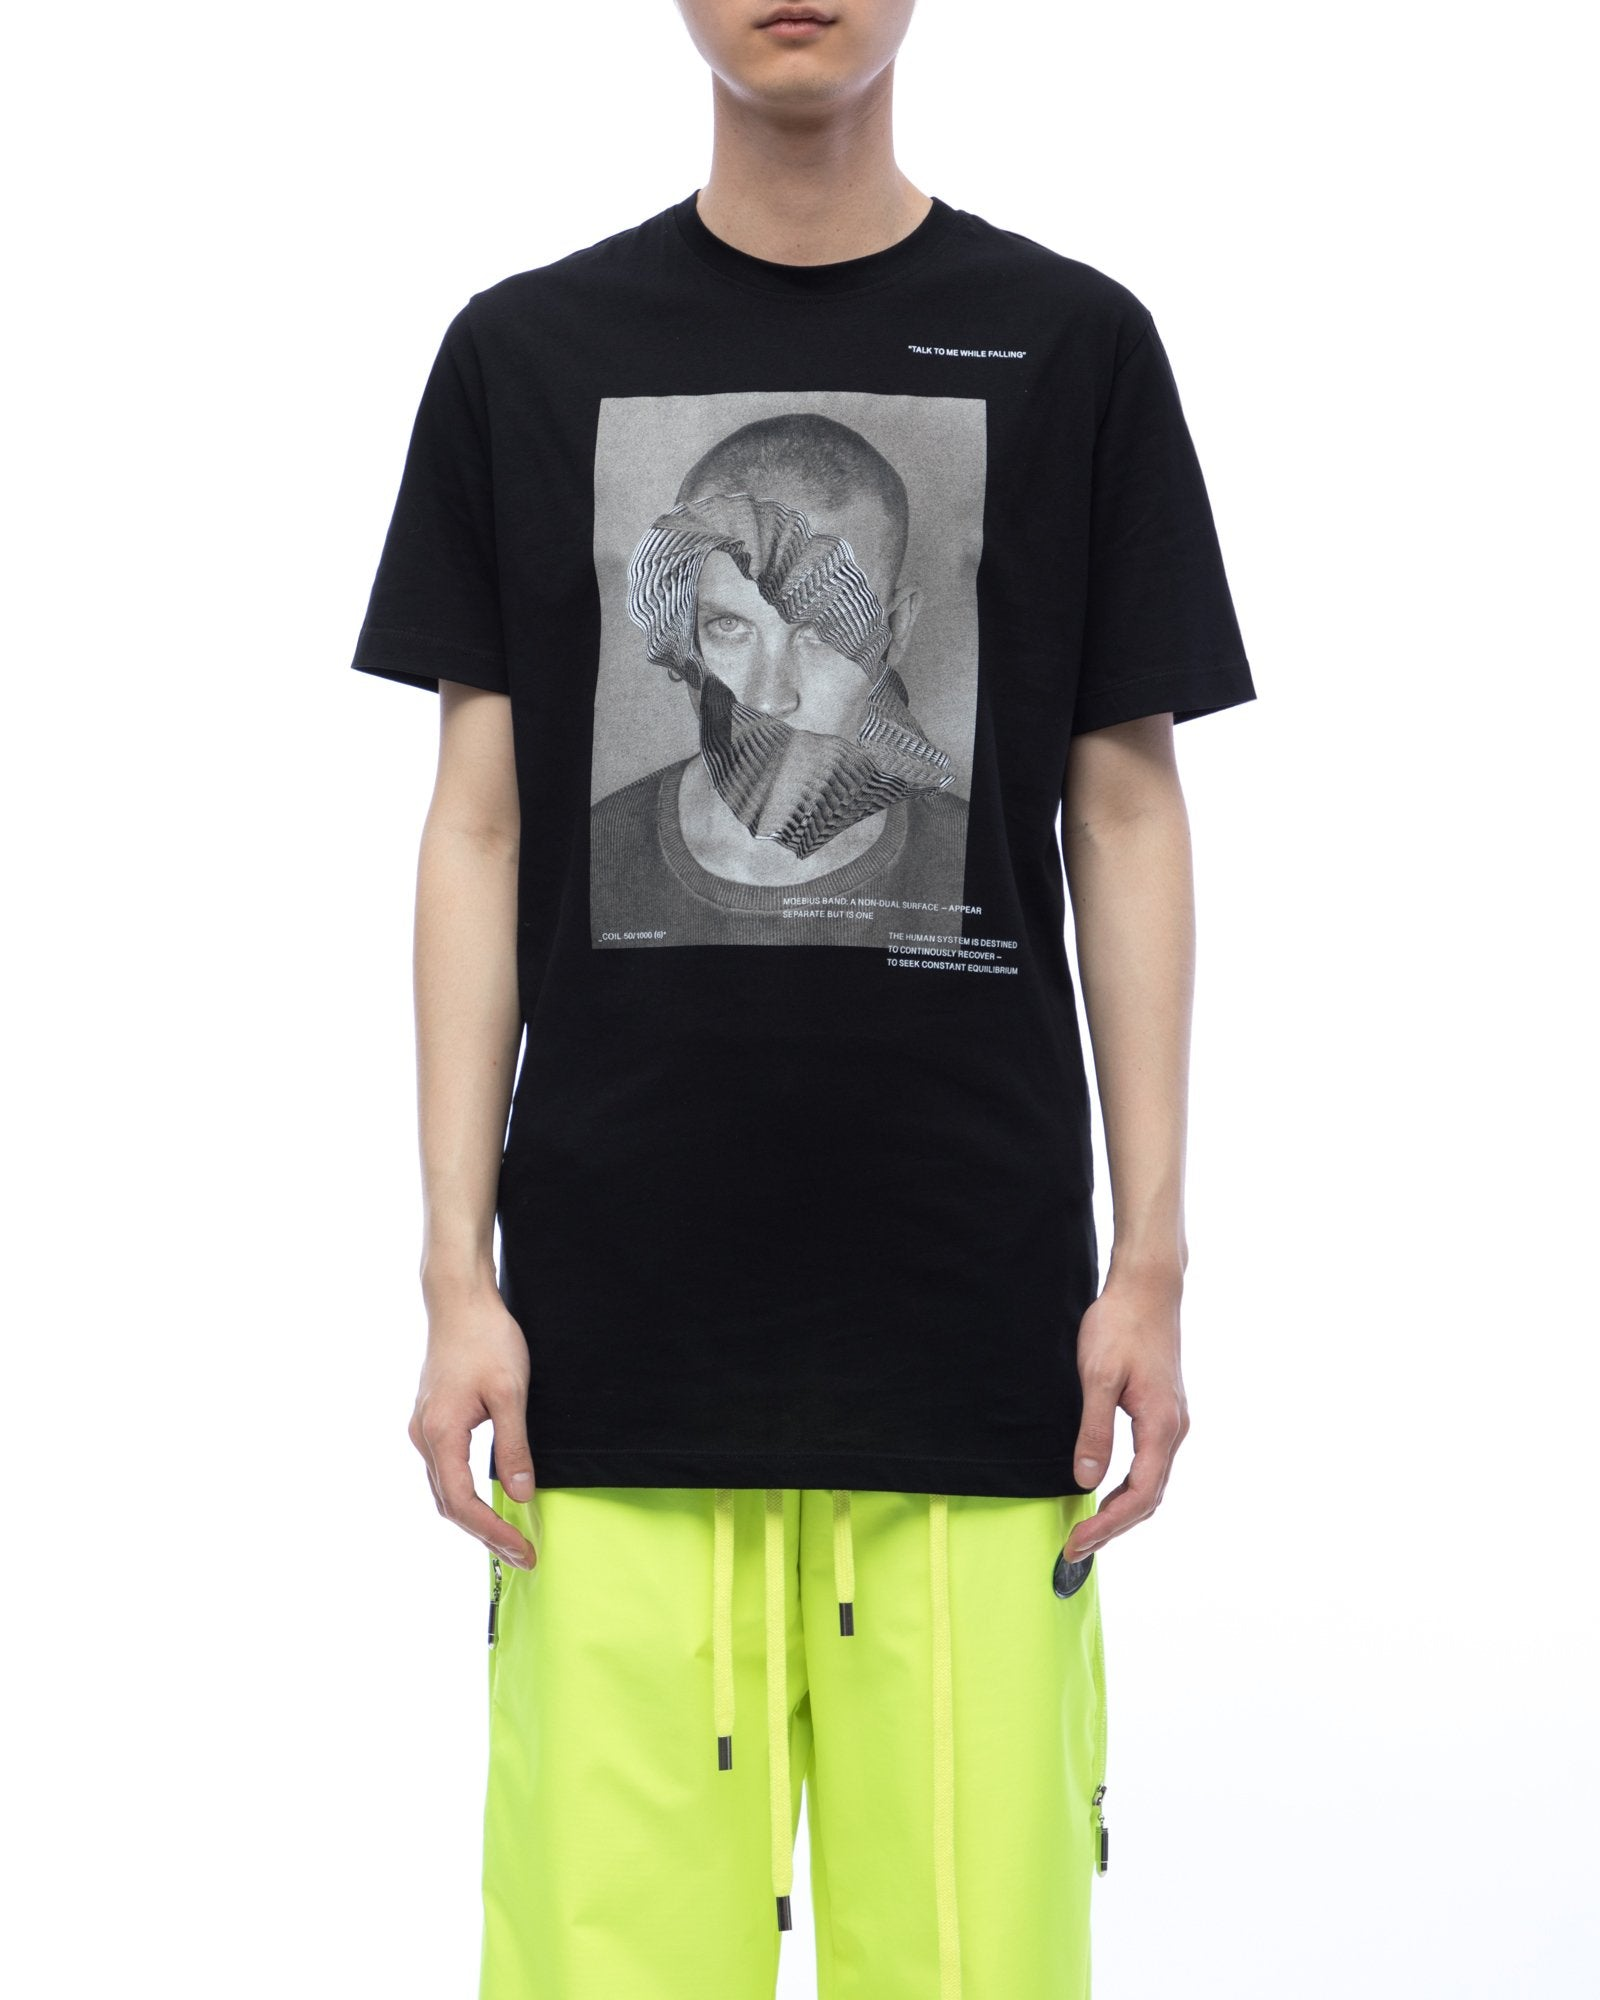 Tee with graphic moebius tour - black